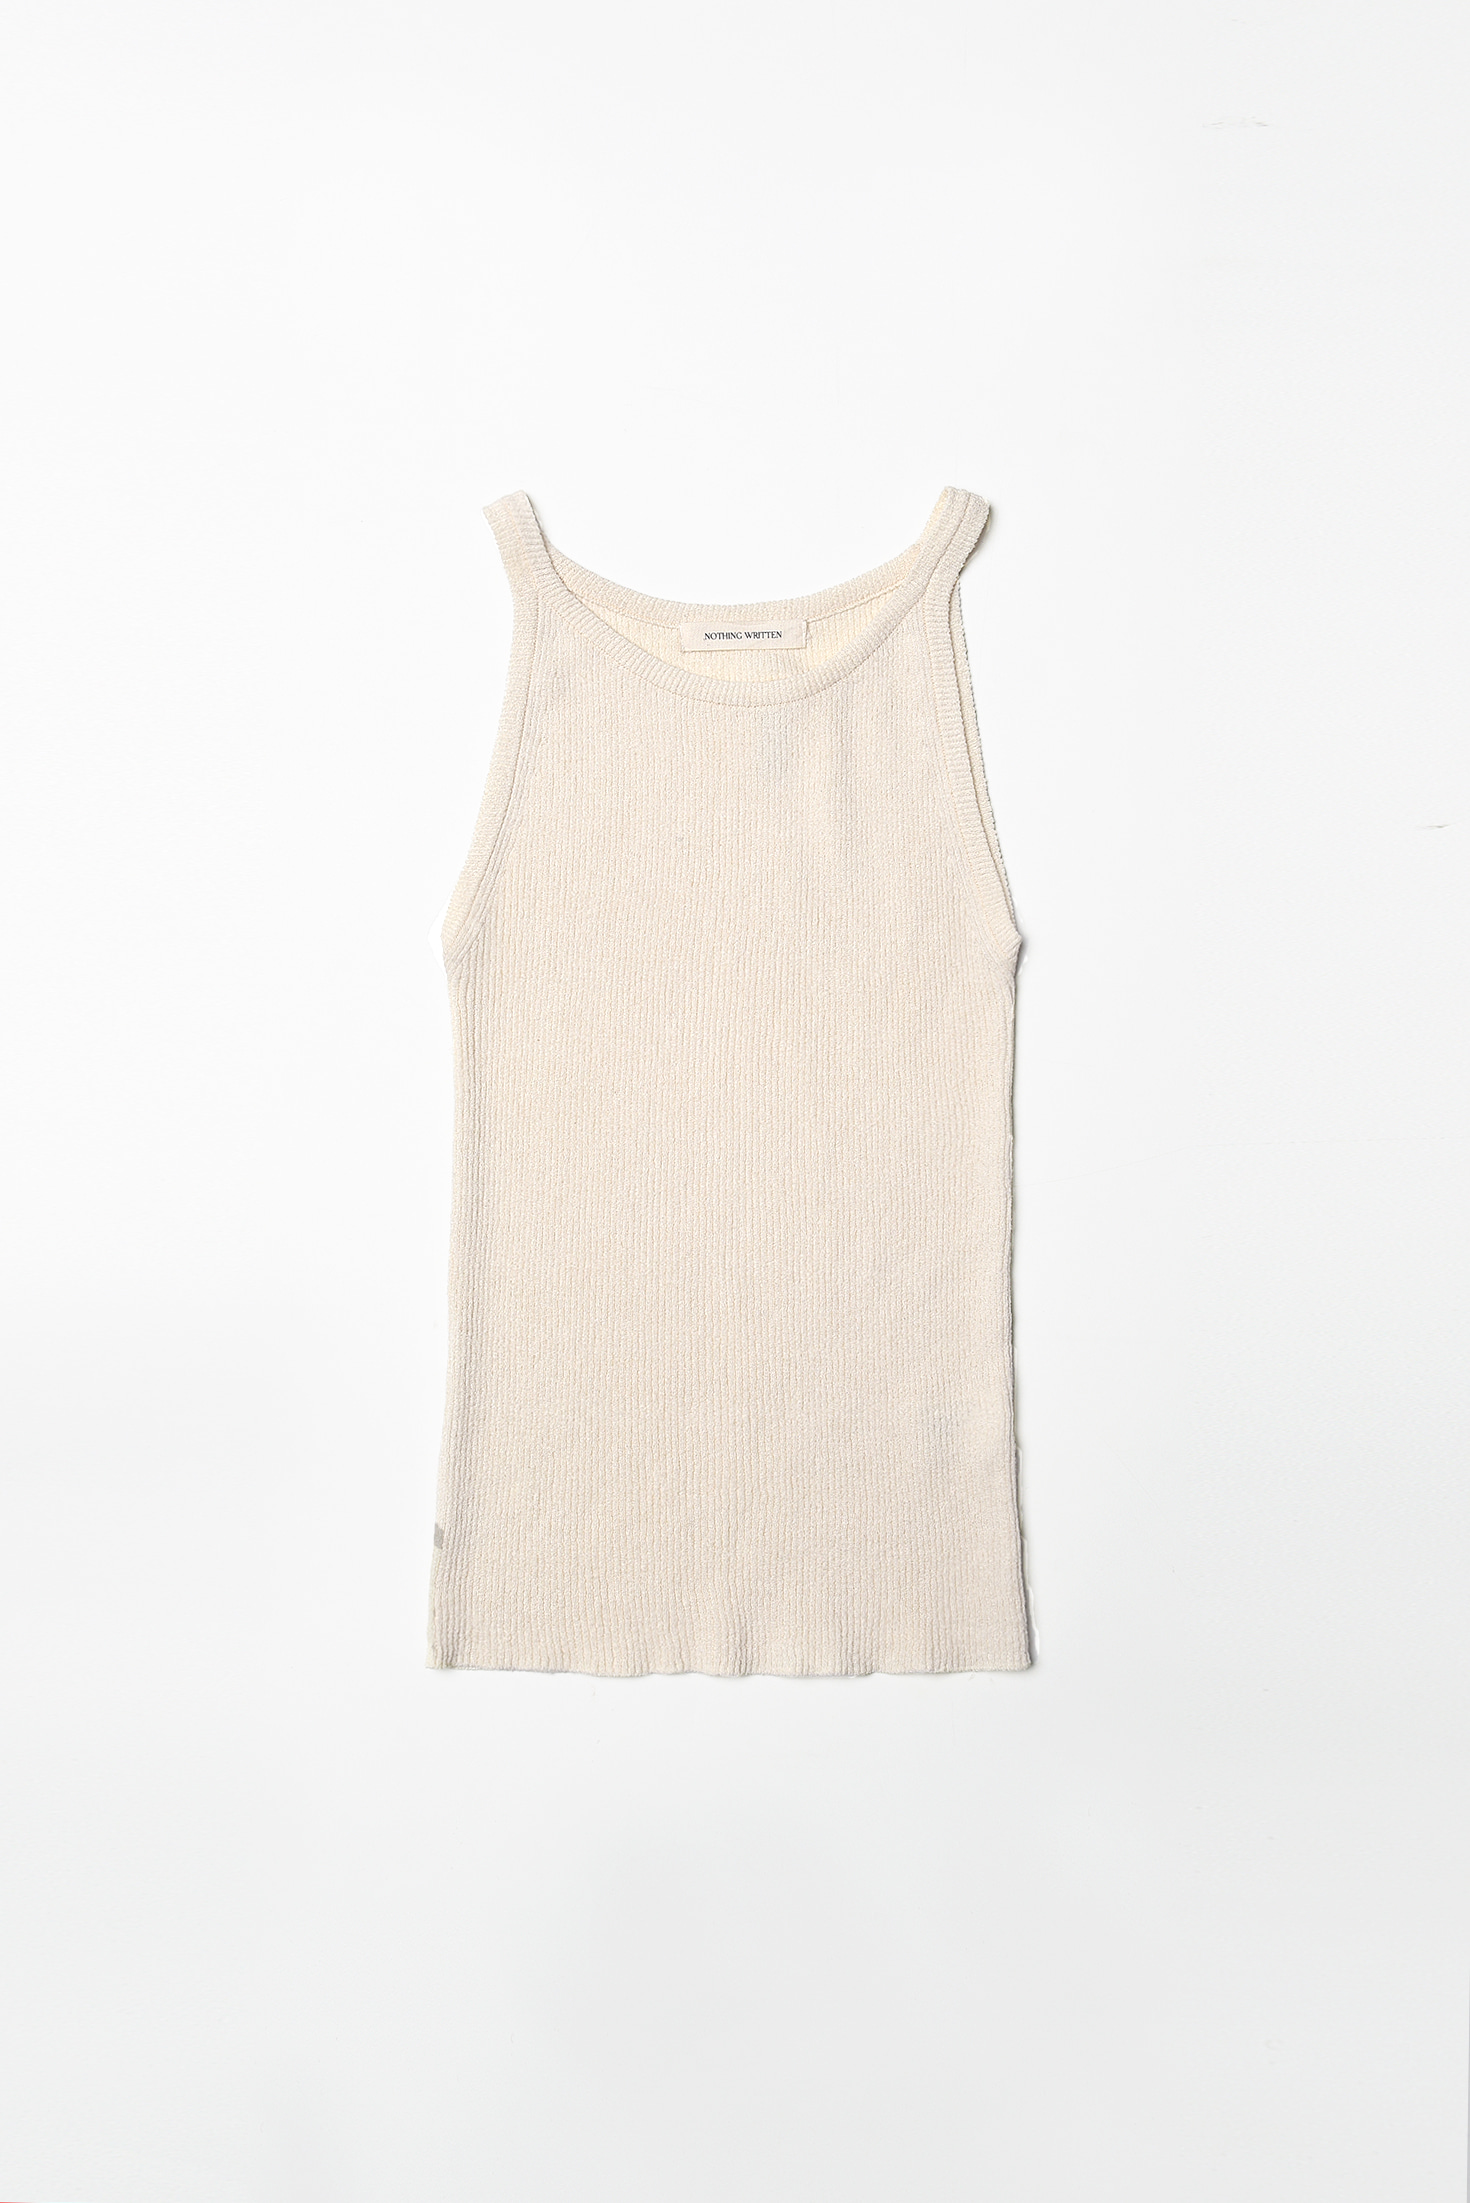 3RE-ORDER / Knit sleeveless (ivory)